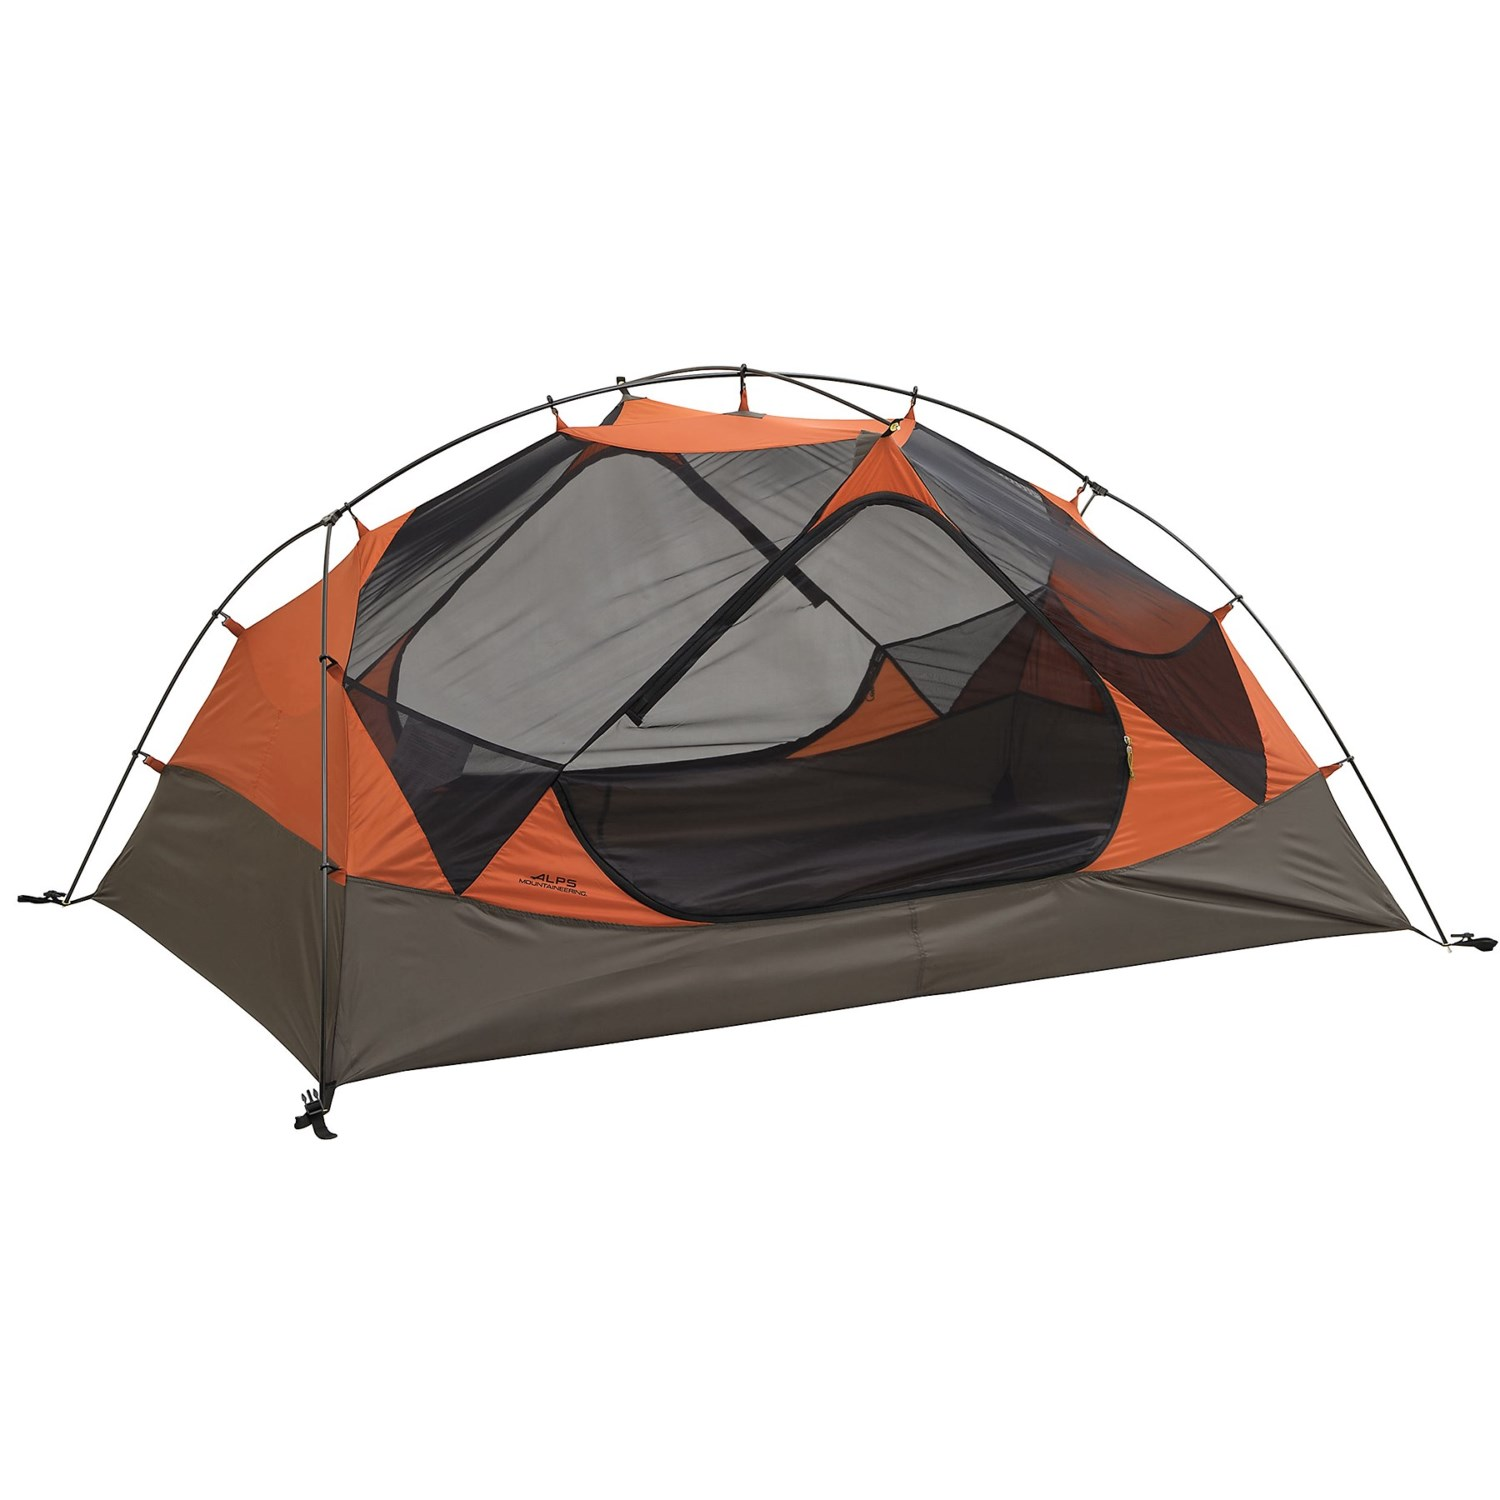 ALPS Mountaineering Chaos 3 Tent - 3-Person 3-Season in Dark Clay ...  sc 1 st  Sierra Trading Post & ALPS Mountaineering Chaos 3 Tent - 3-Person 3-Season - Save 48%